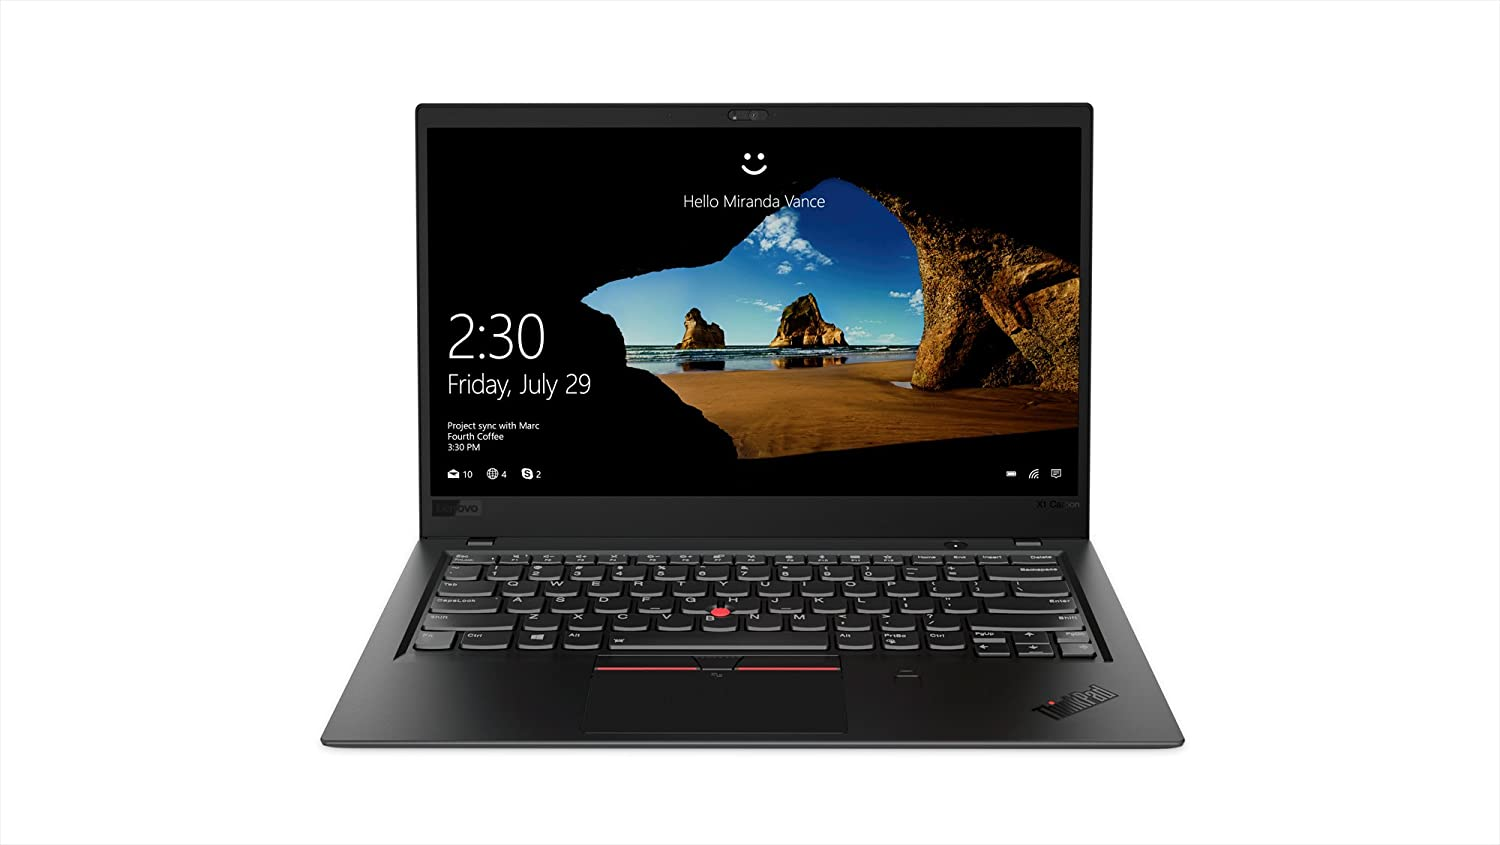 Lenovo ThinkPad X1 Carbon Laptop, High Performance Windows Laptop, (Intel Core i7, 16 GB RAM, 512GB SSD, Windows 10 Pro), 20KH002JUS